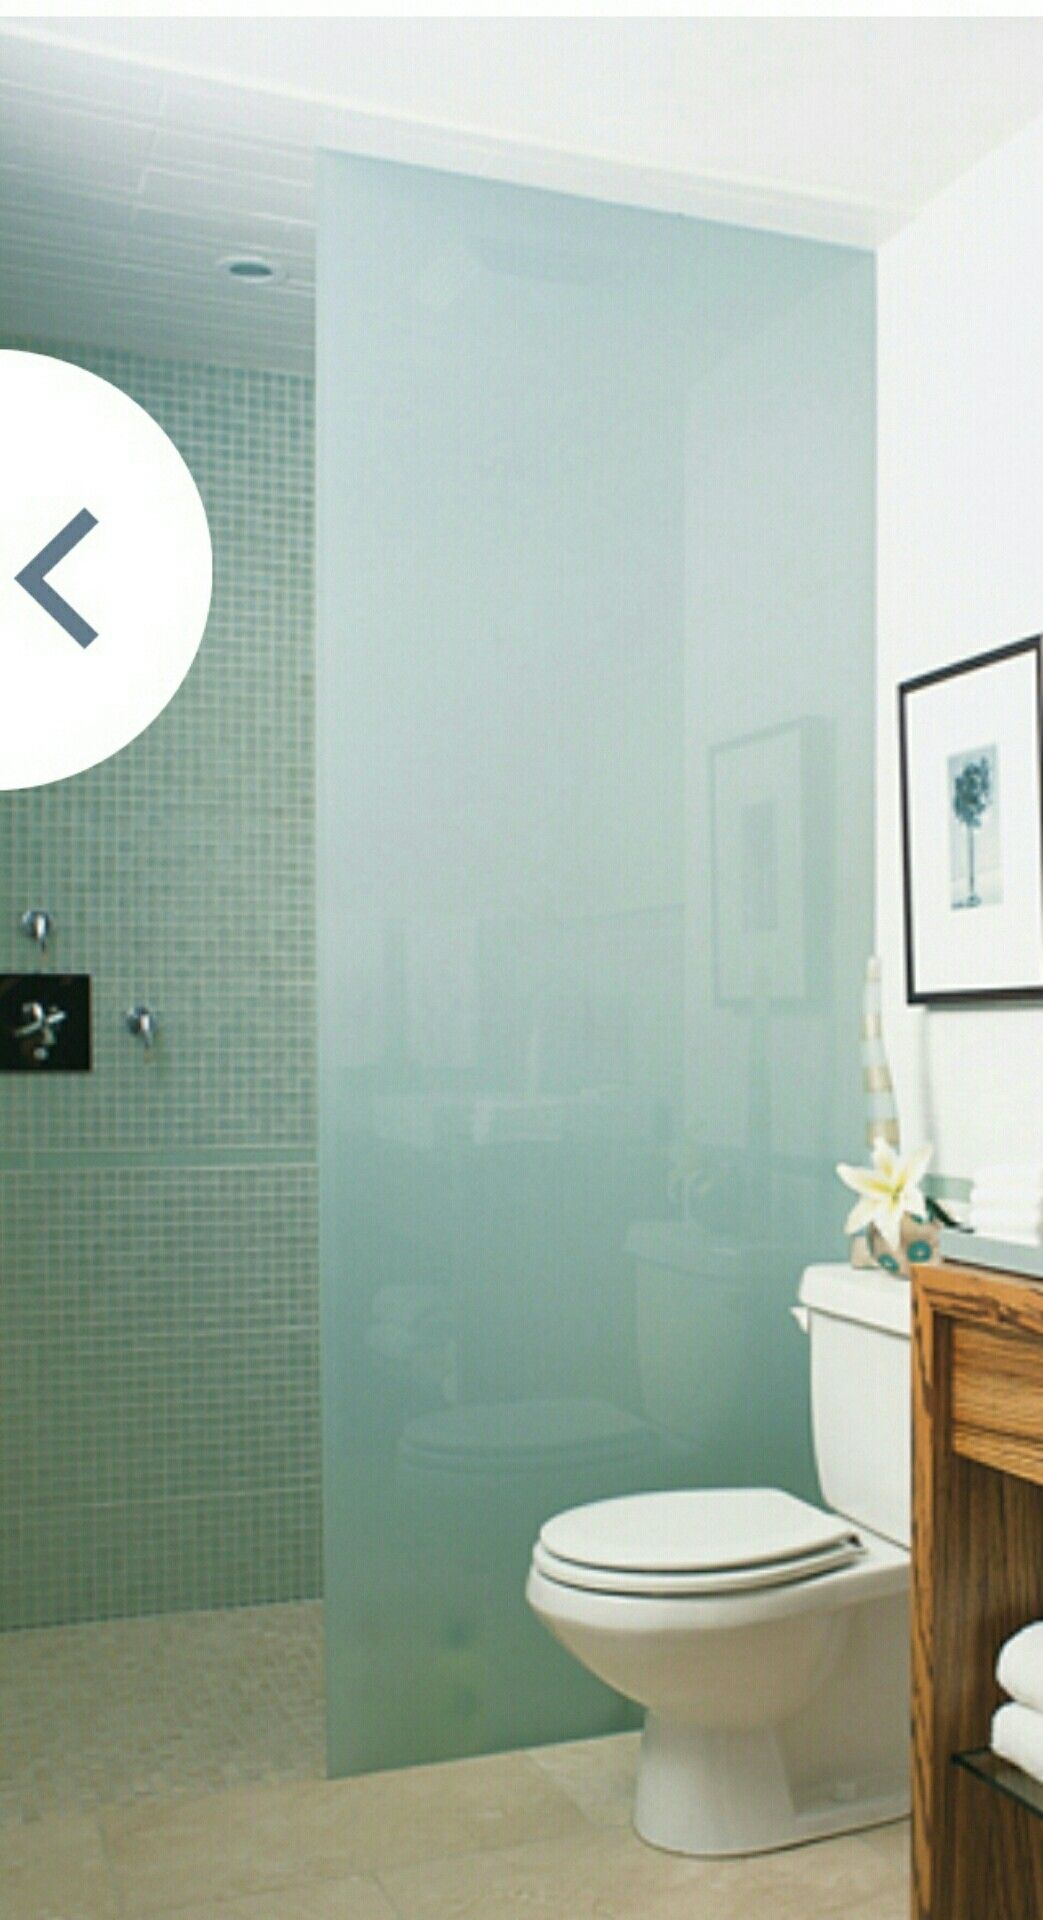 Shower With No Door Love The Opaque Glass From Floor To Ceiling